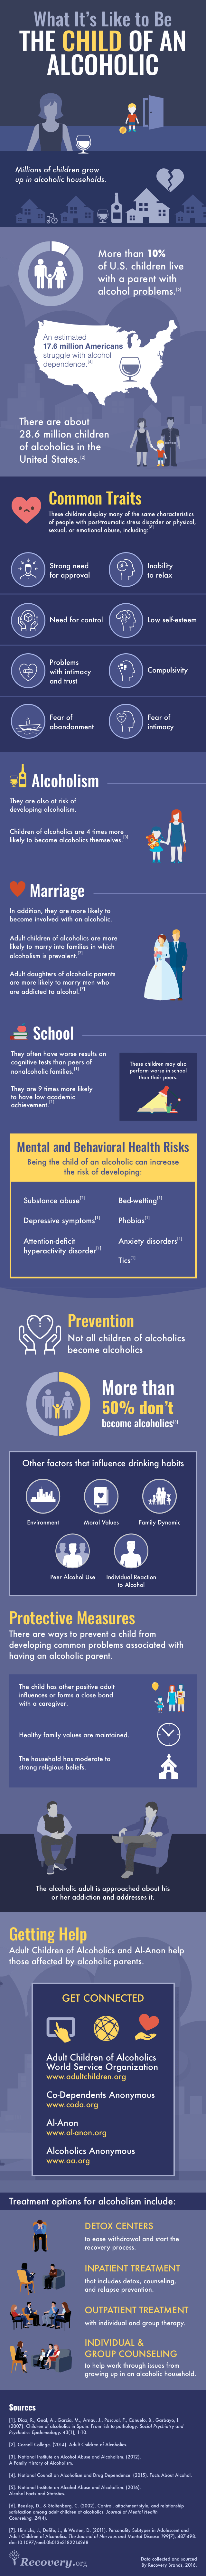 Infographic: What It's Like to Be the Child of an Alcoholic